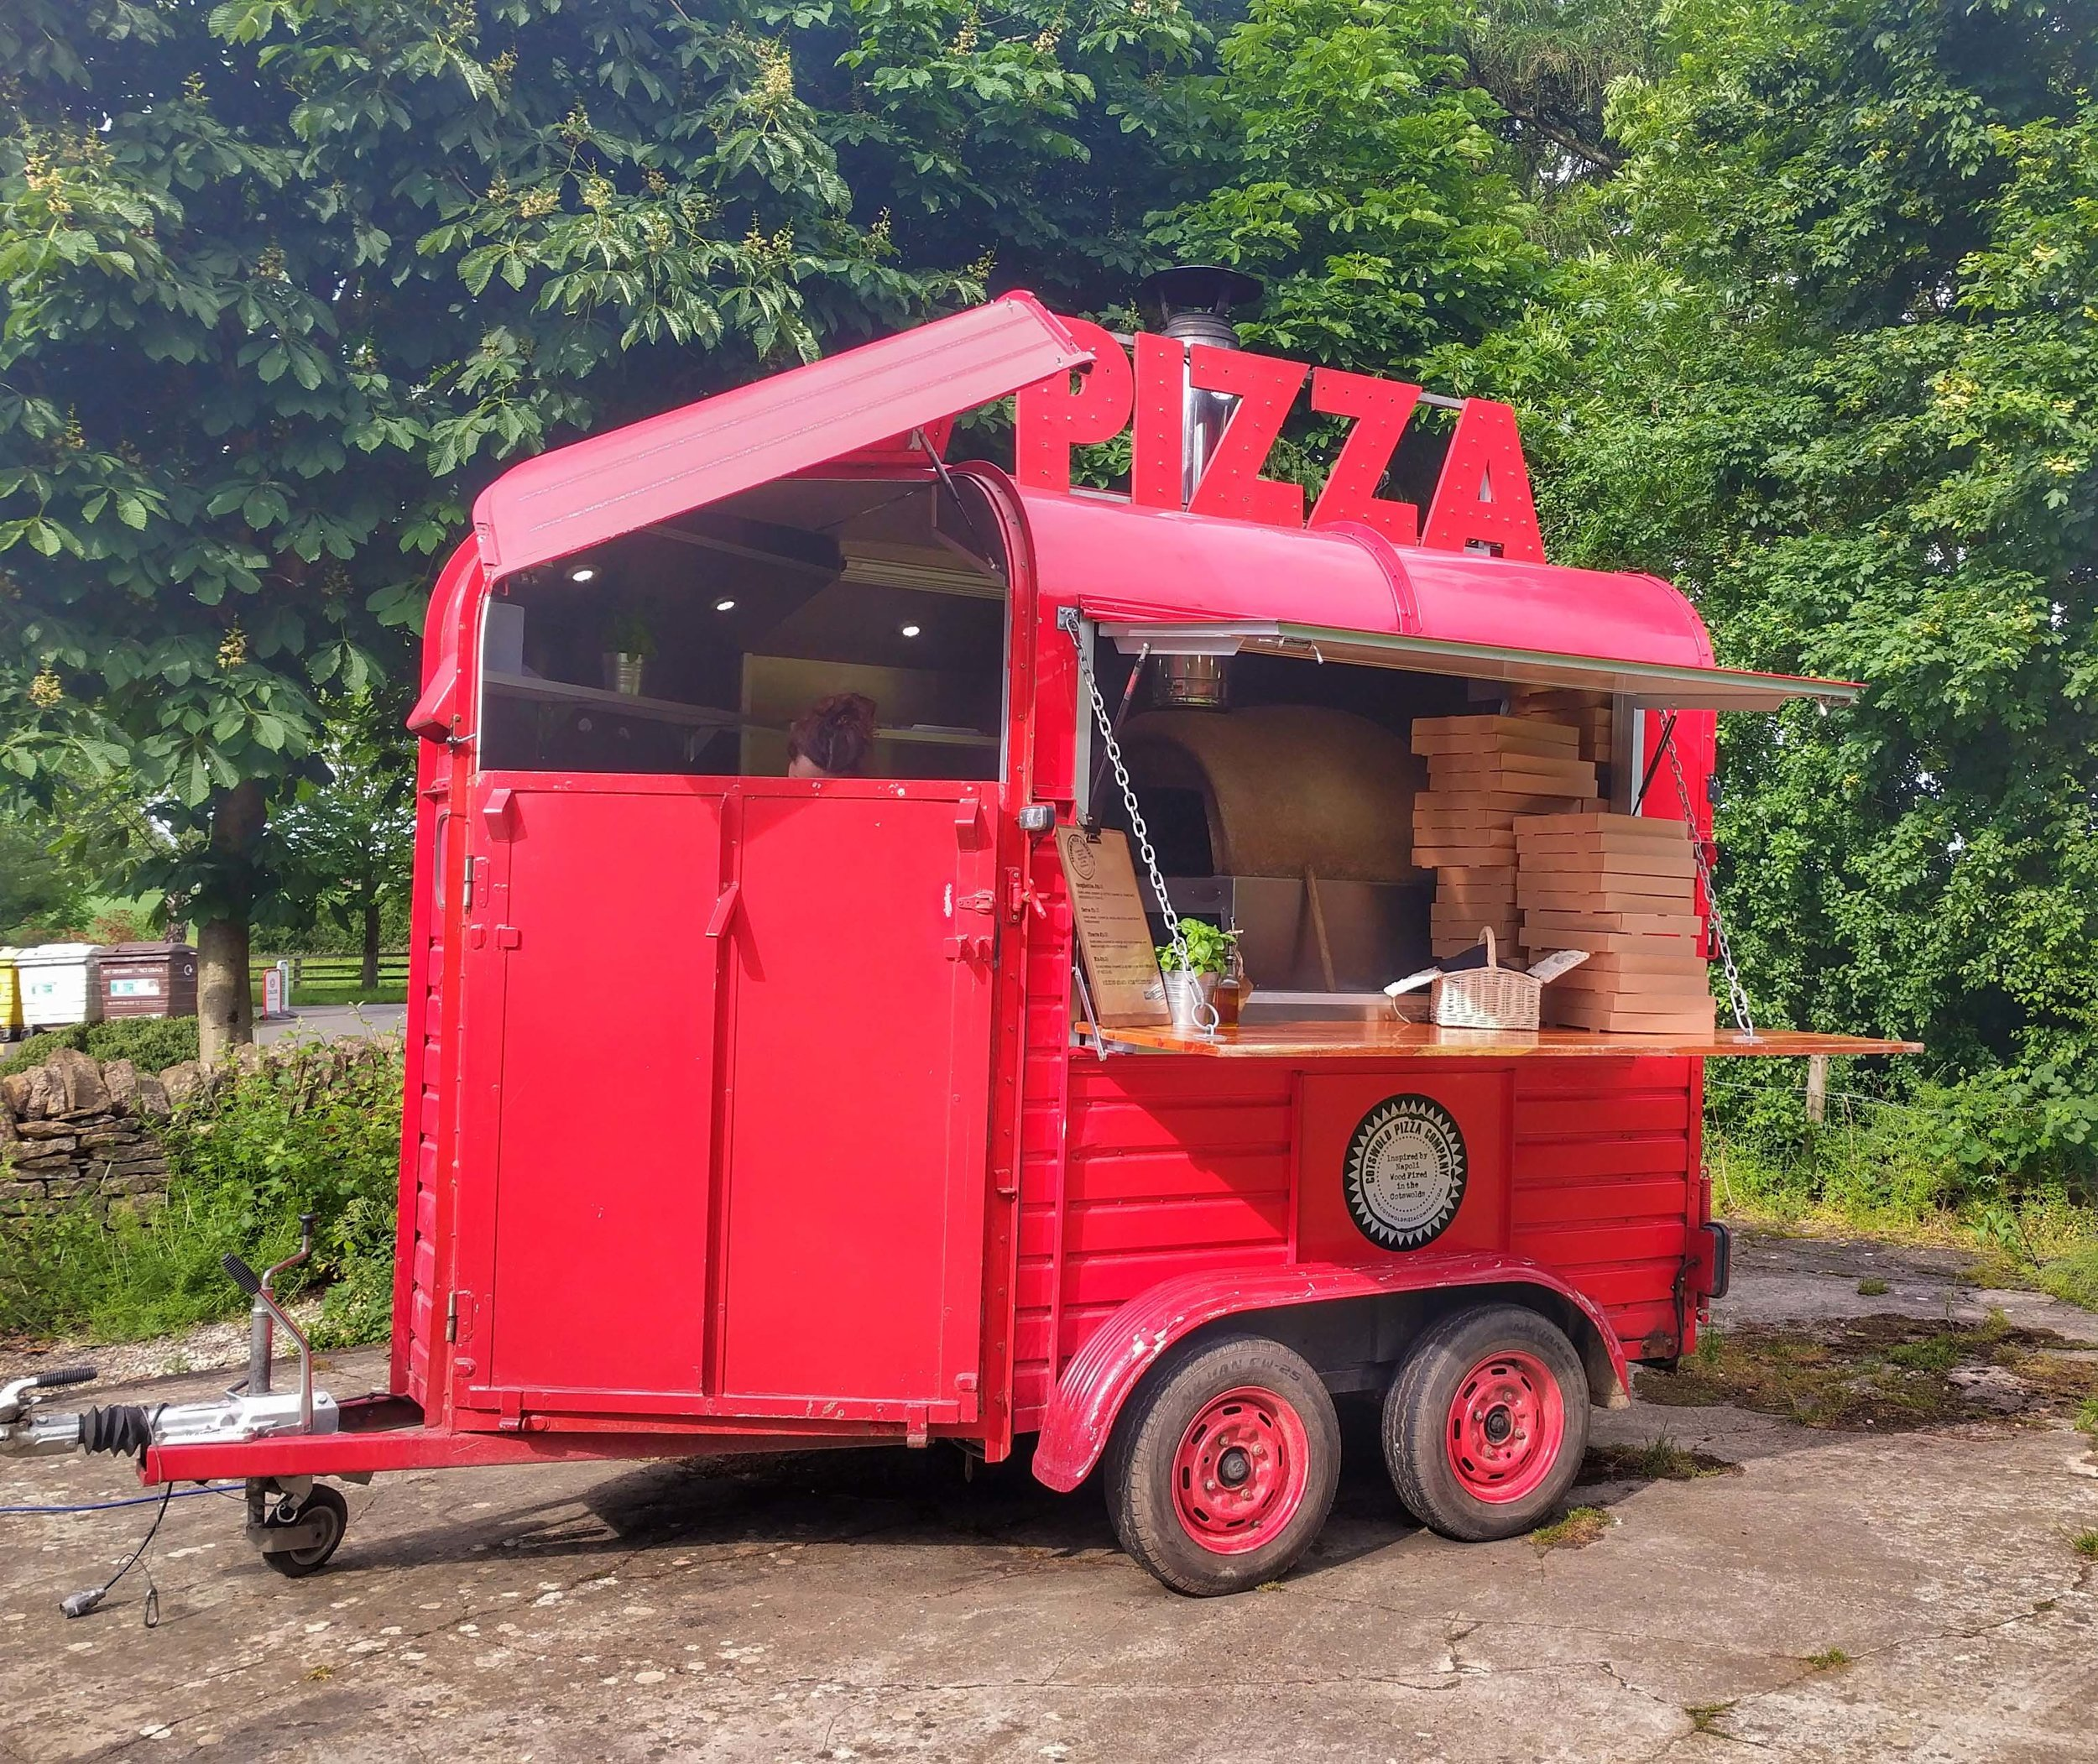 Food Truck selling delicious pizza at Chipping Norton Campsite